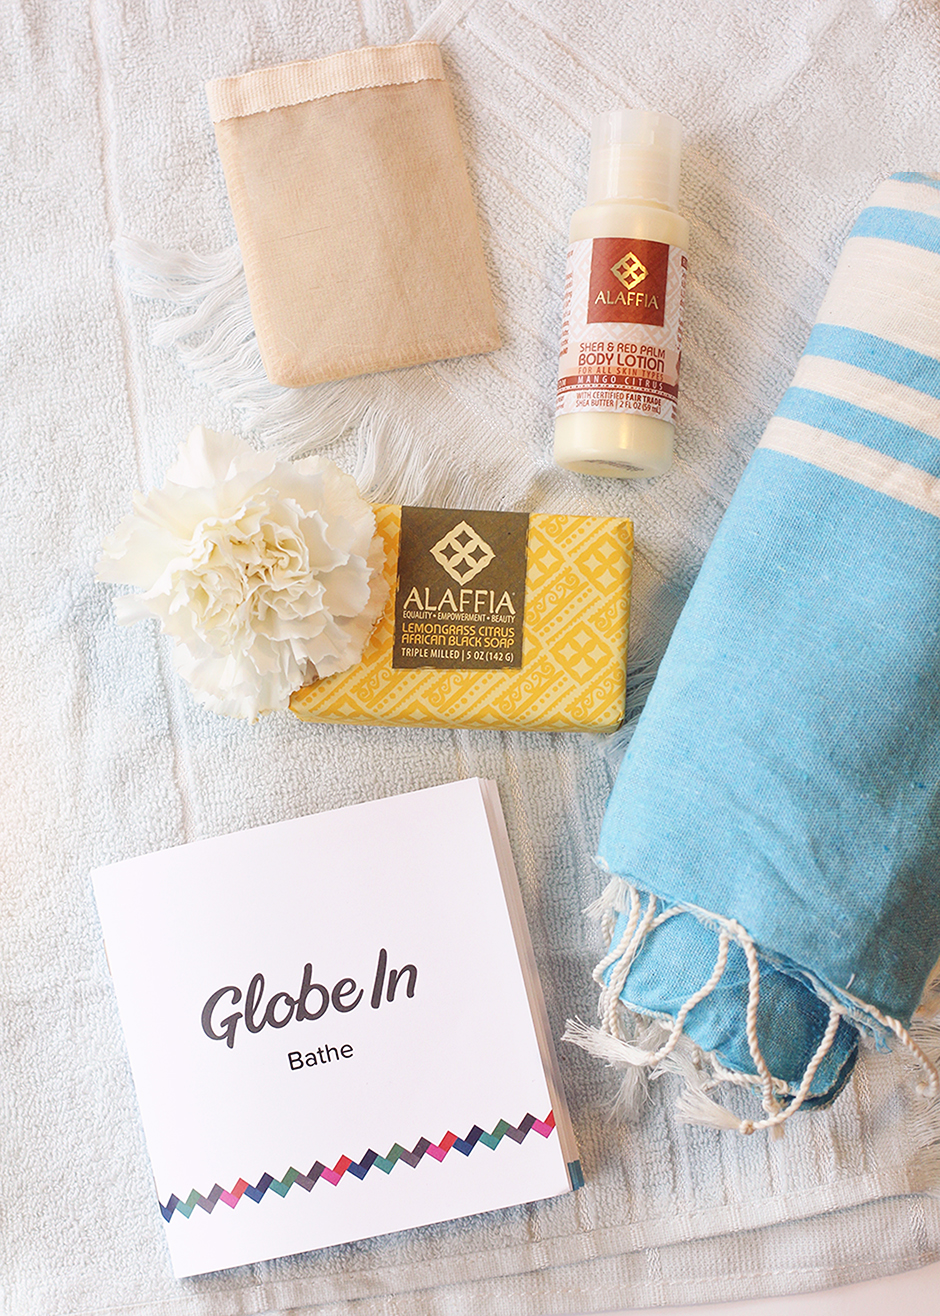 GlobeIn Fair Trade Subscription Box